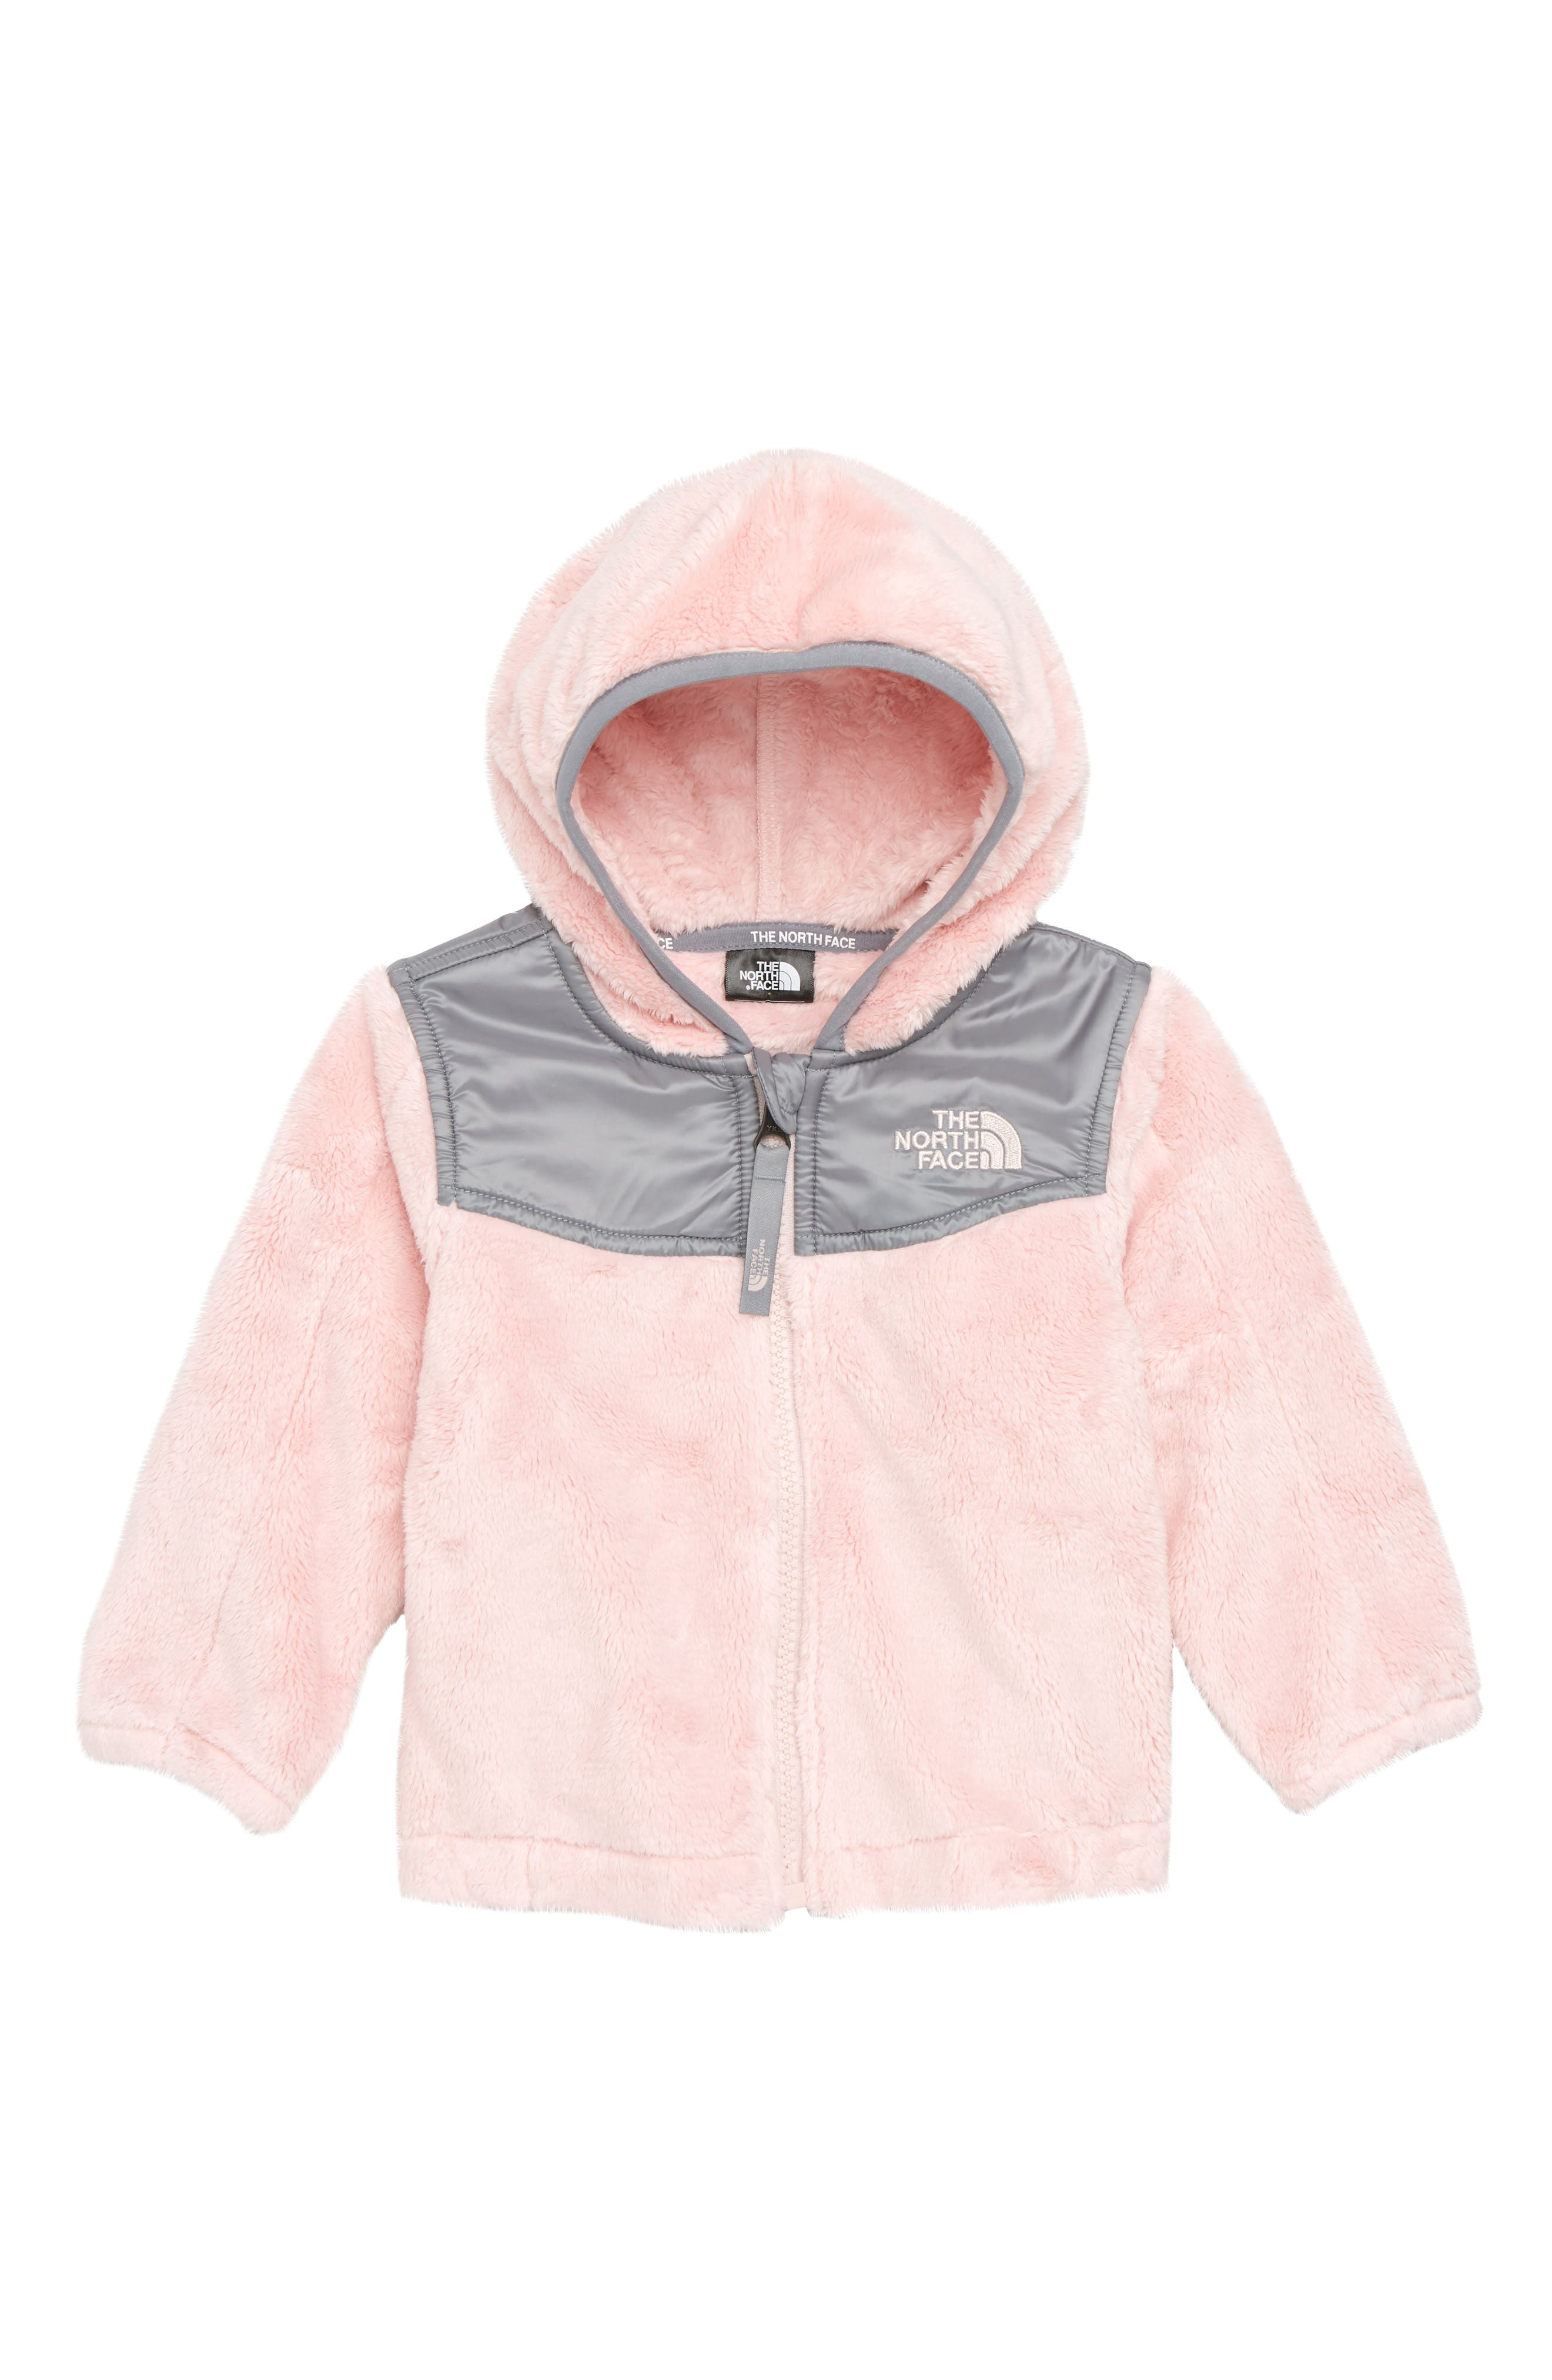 Oso Hooded Fleece Jacket,                             Main thumbnail 1, color,                             PURDY PINK